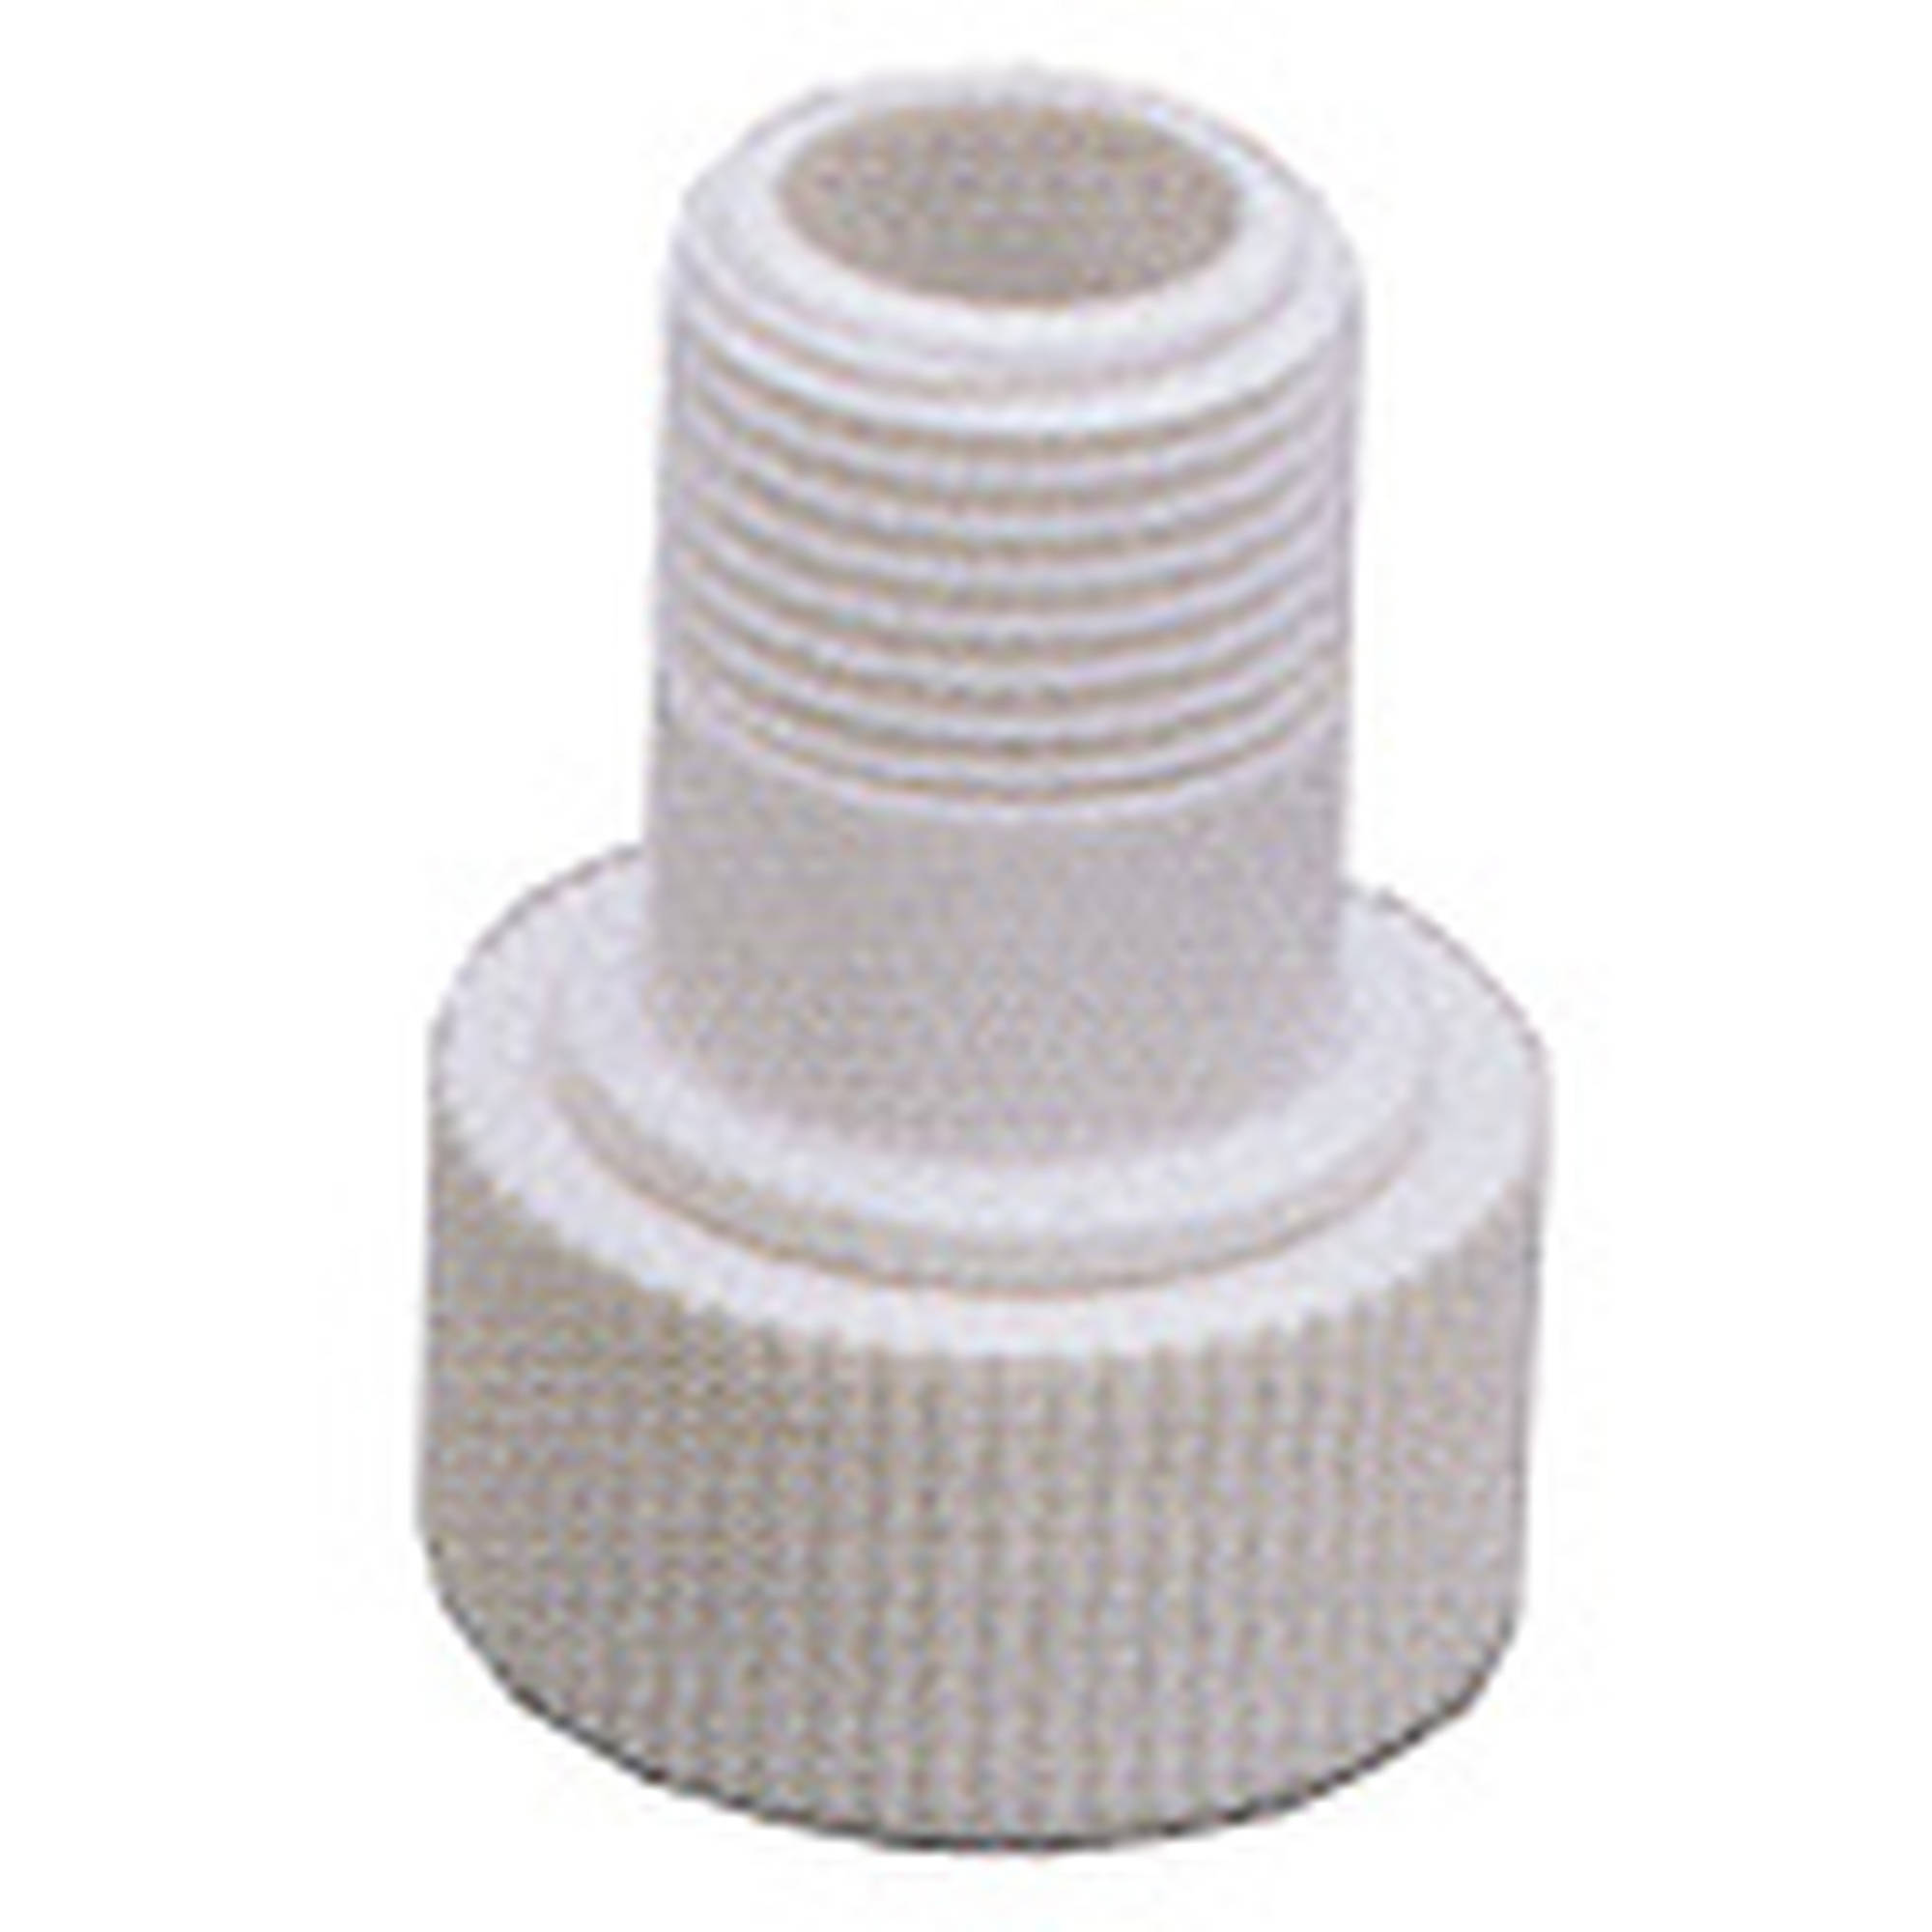 "Orbit 53365 1/2"" MNPT x 3/4"" FHT Plastic Hose-To-Pipe Fittings"